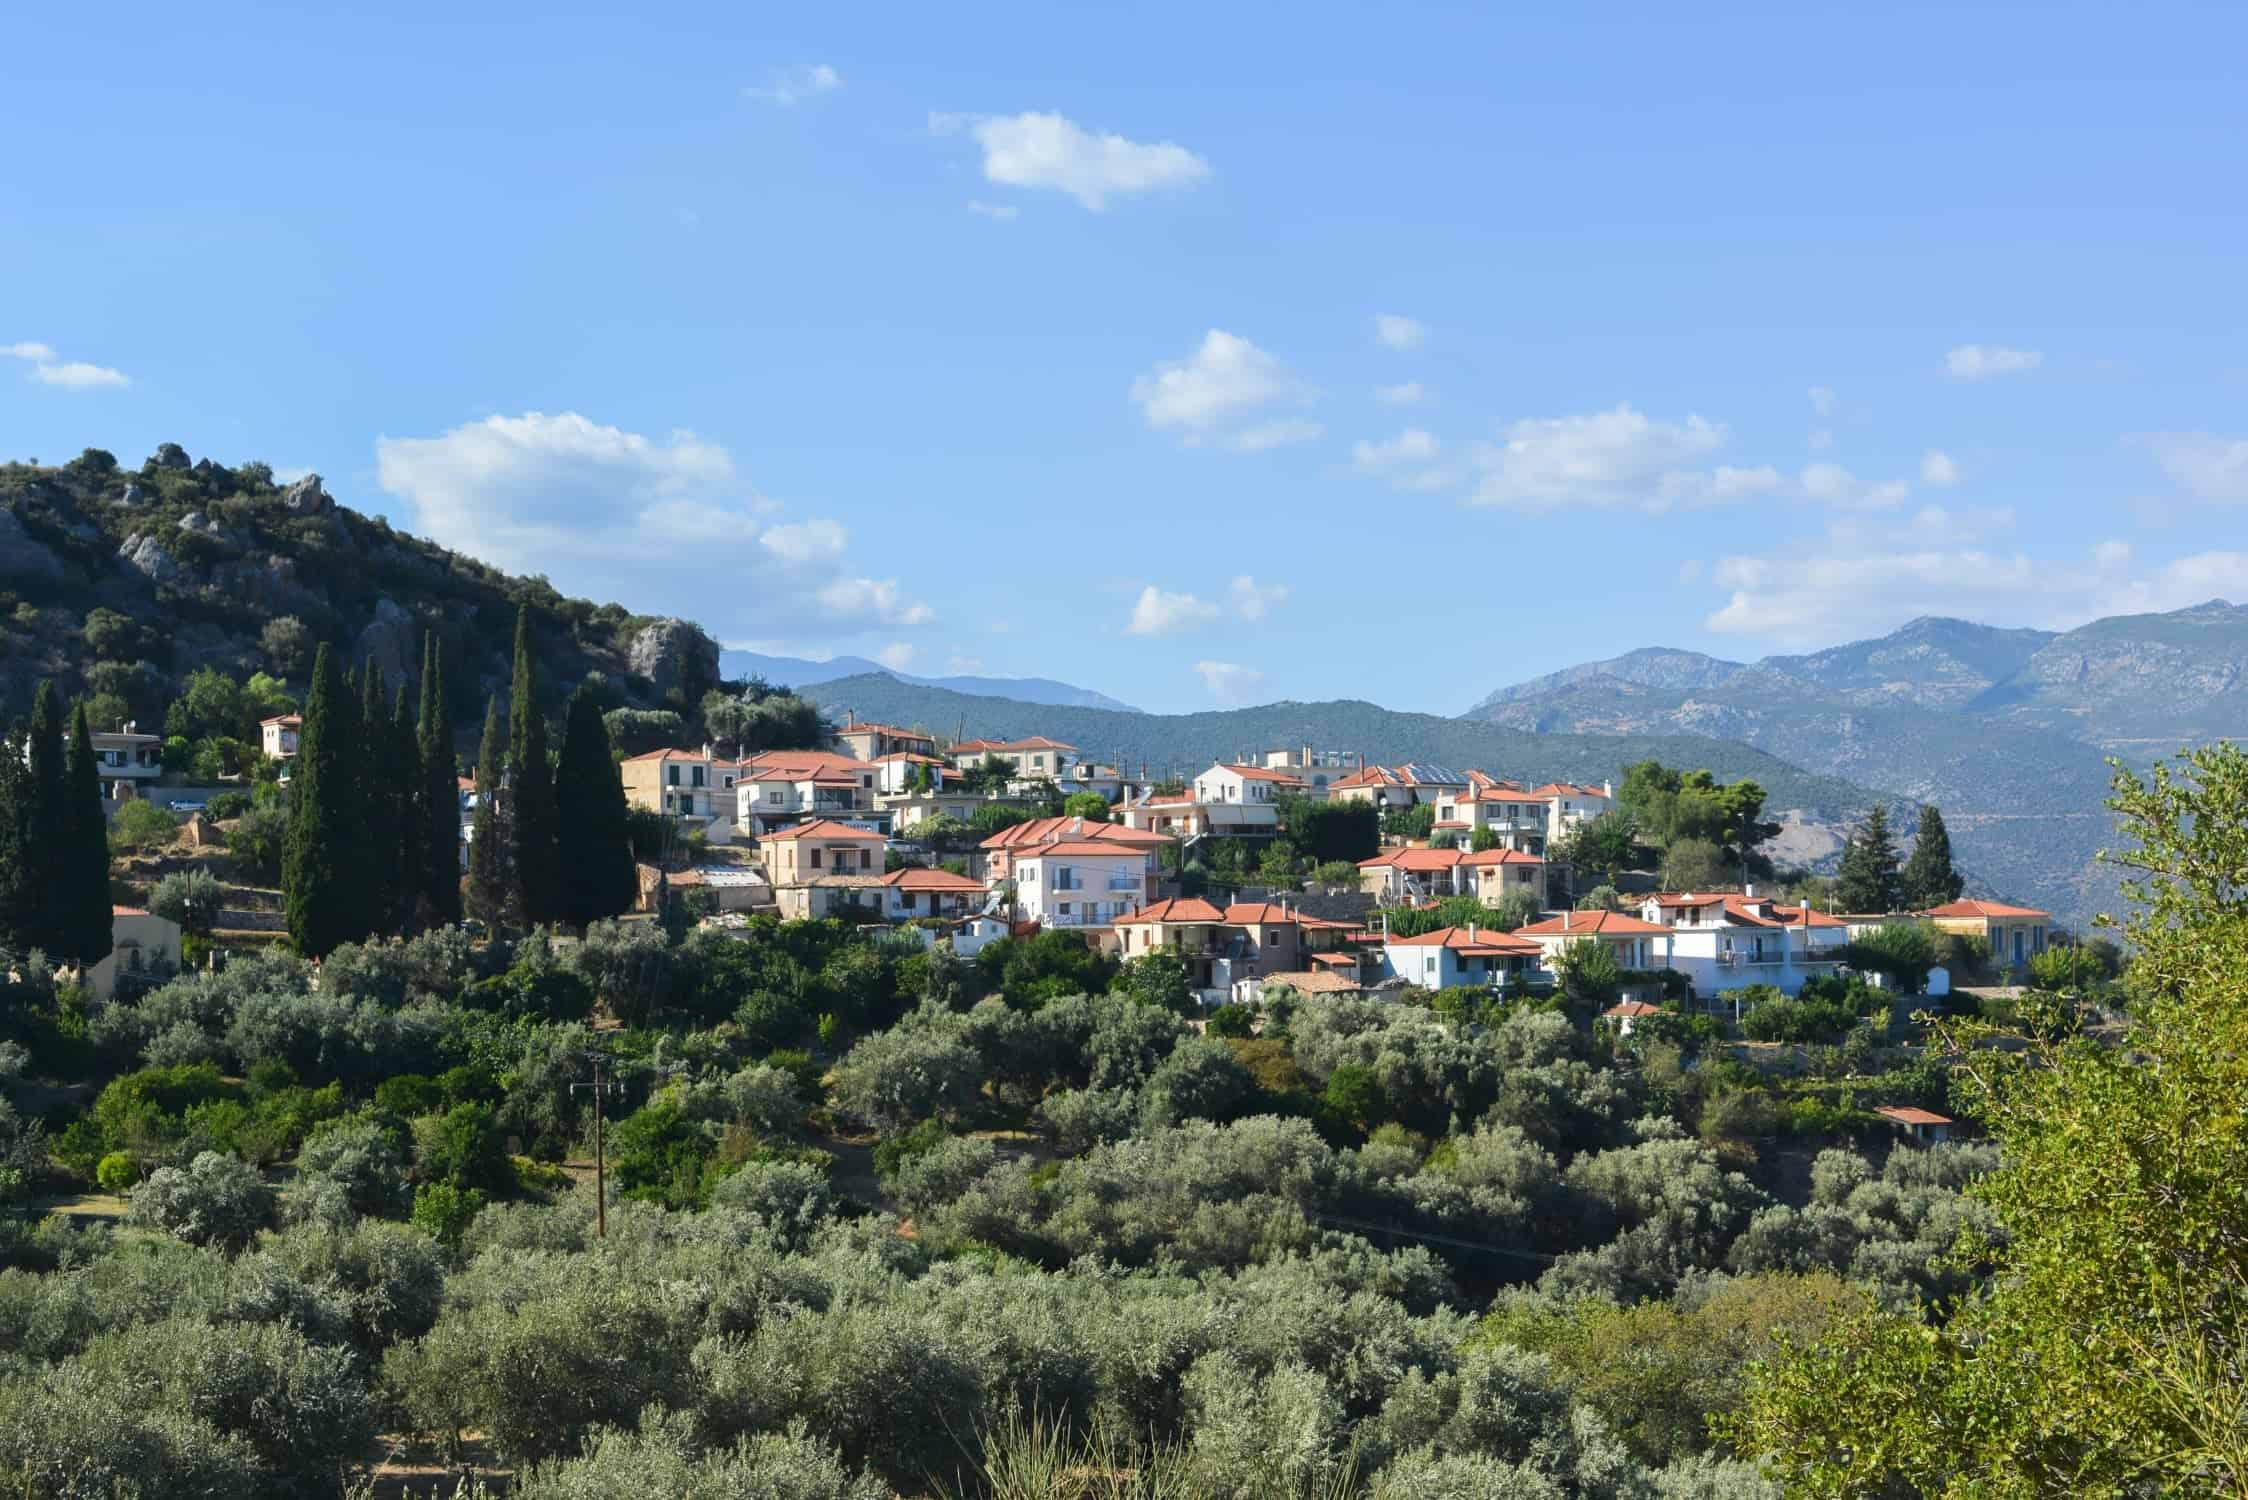 Amfissa - village view surrounded by olive trees and other green plants